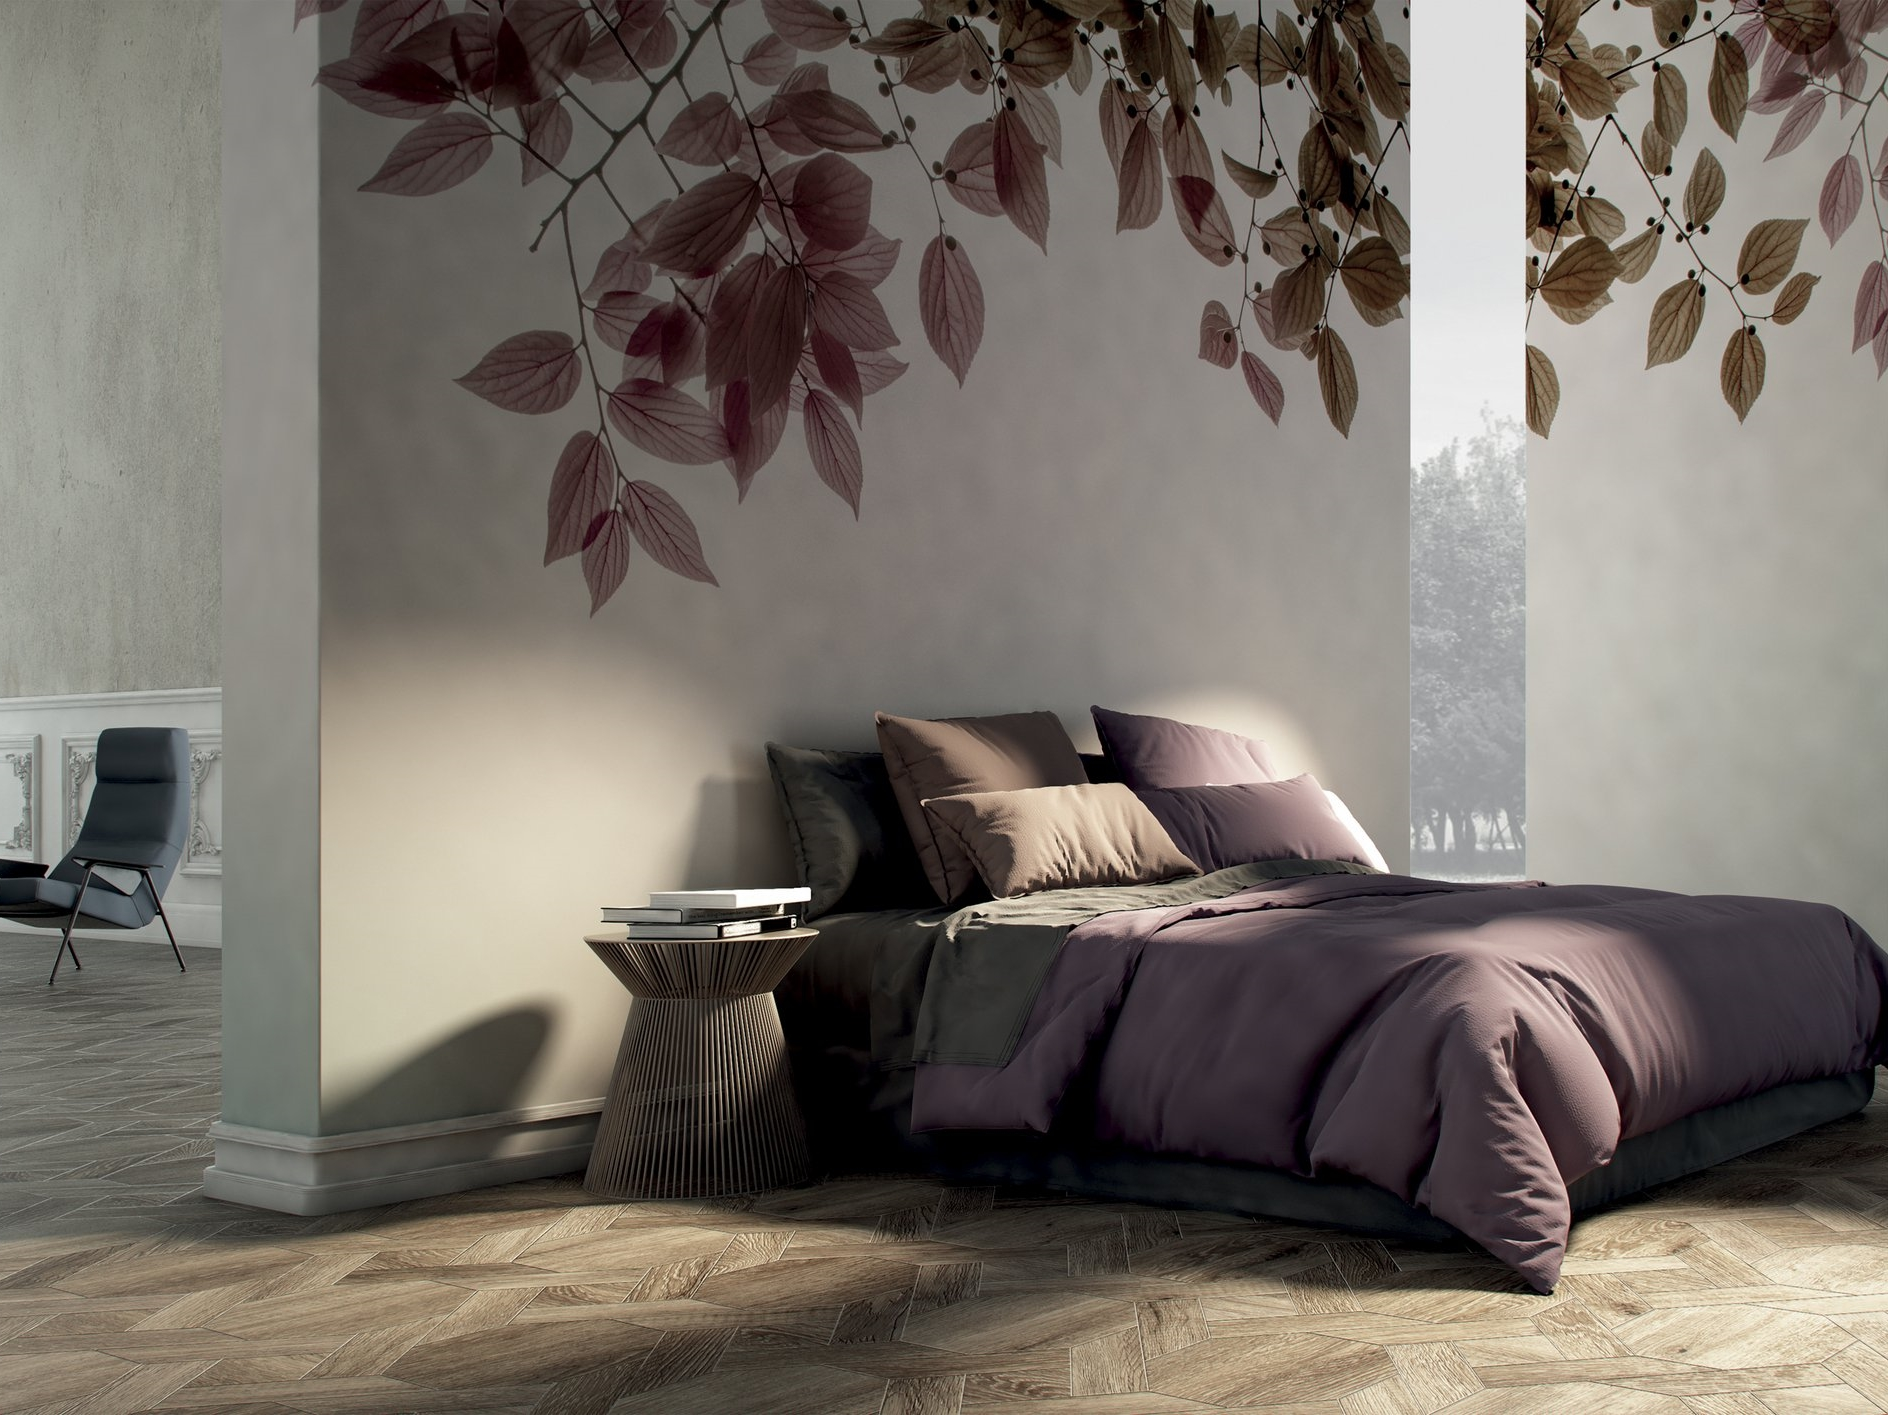 Bedroom with a wallpaper reproducing the natural fractal of branches with leaves, that drape from the top.